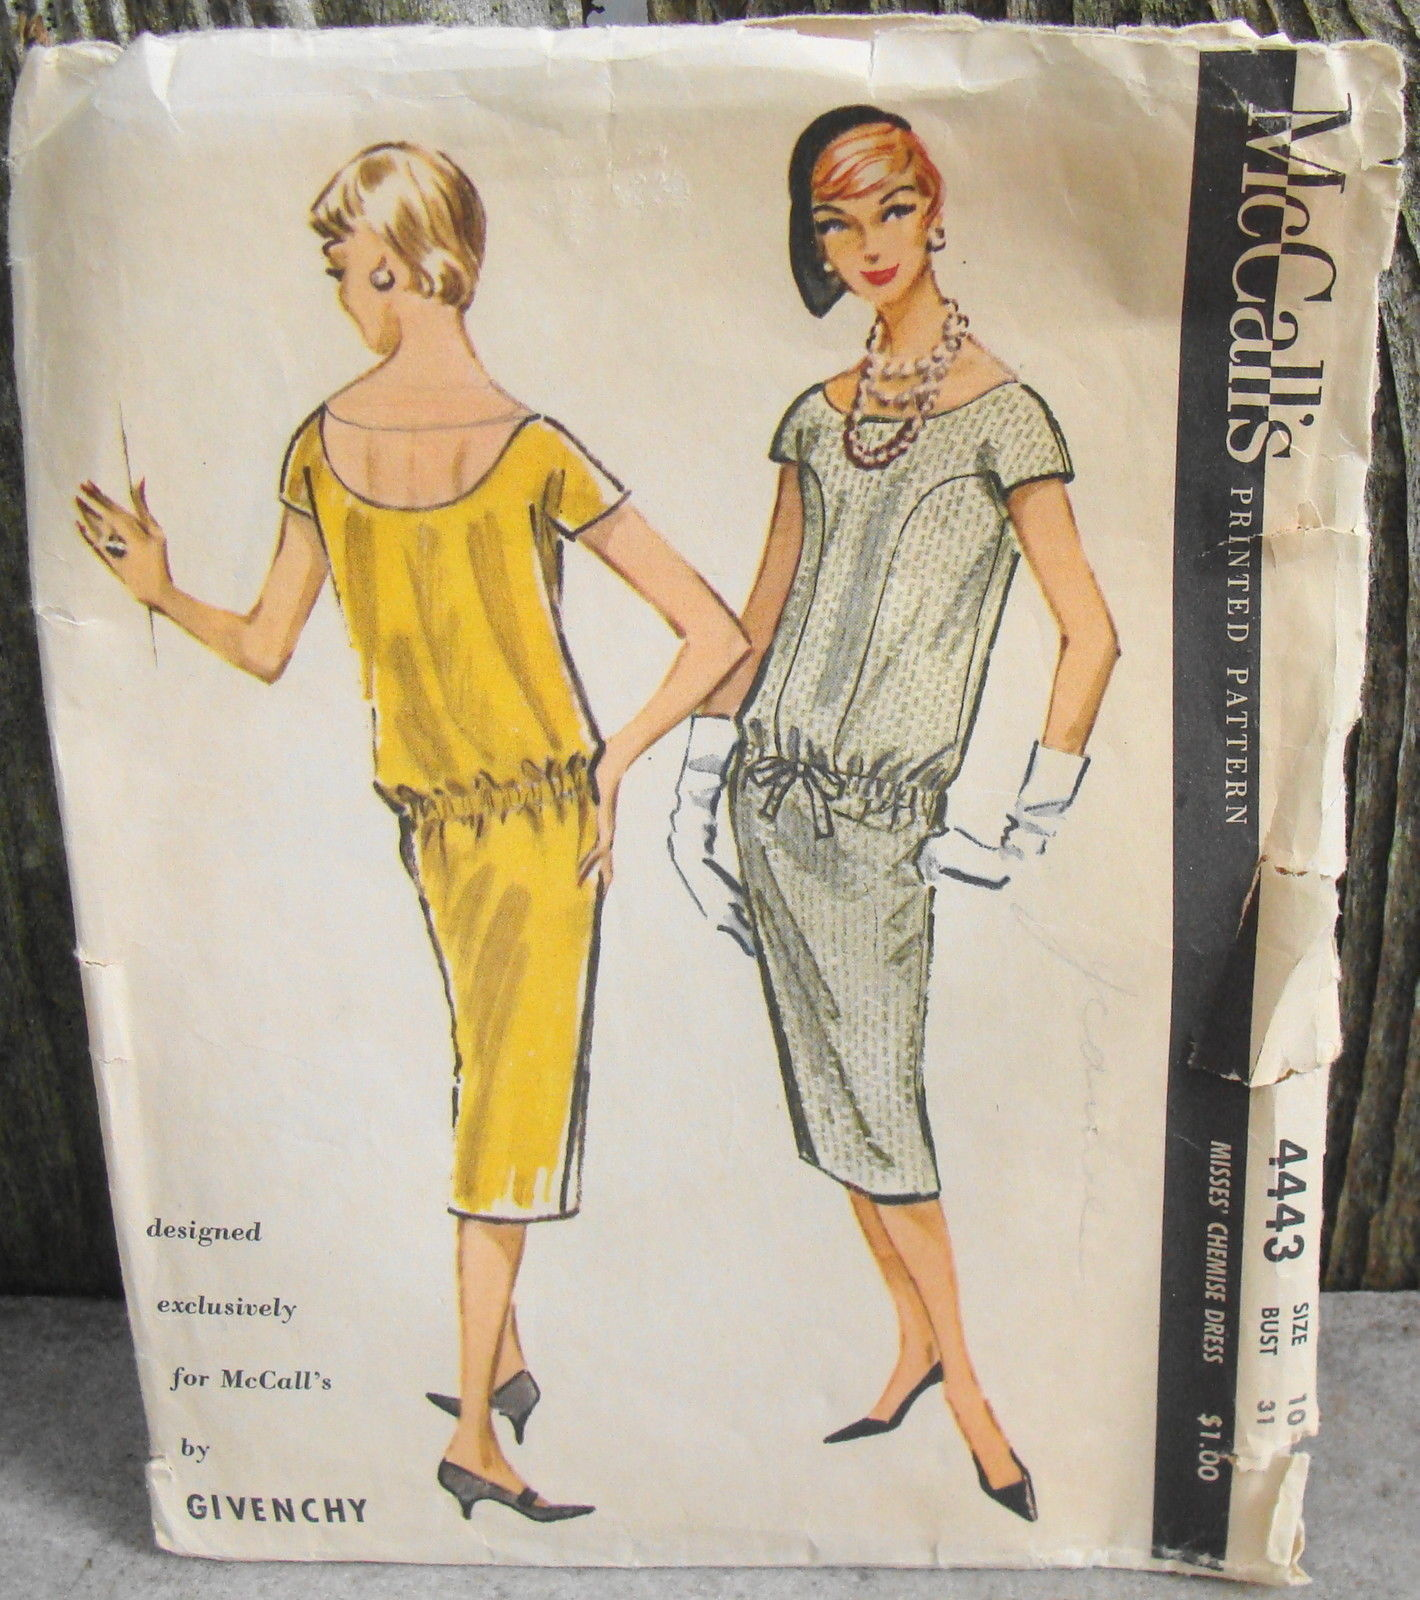 McCall's 4443 Givenchy 1958 Chemise Dress and 40 similar items